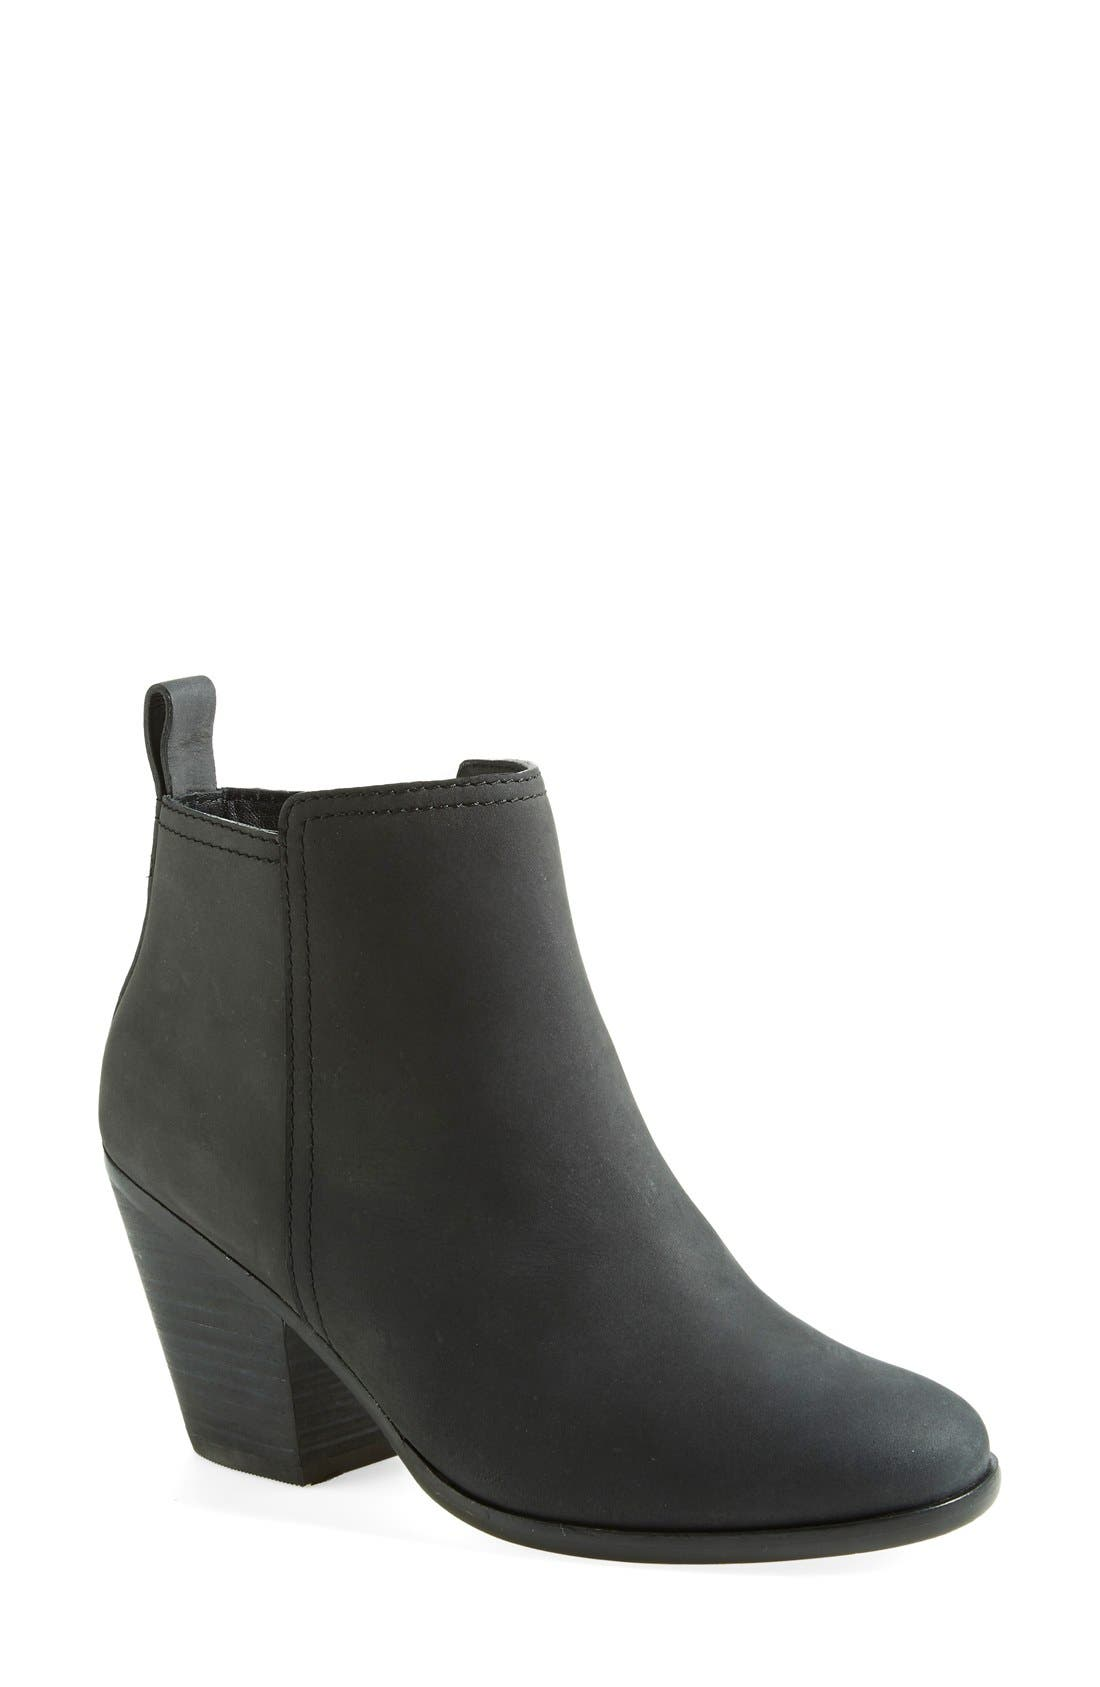 COLE HAAN 'Chesney' Round Toe Bootie, Main, color, 001